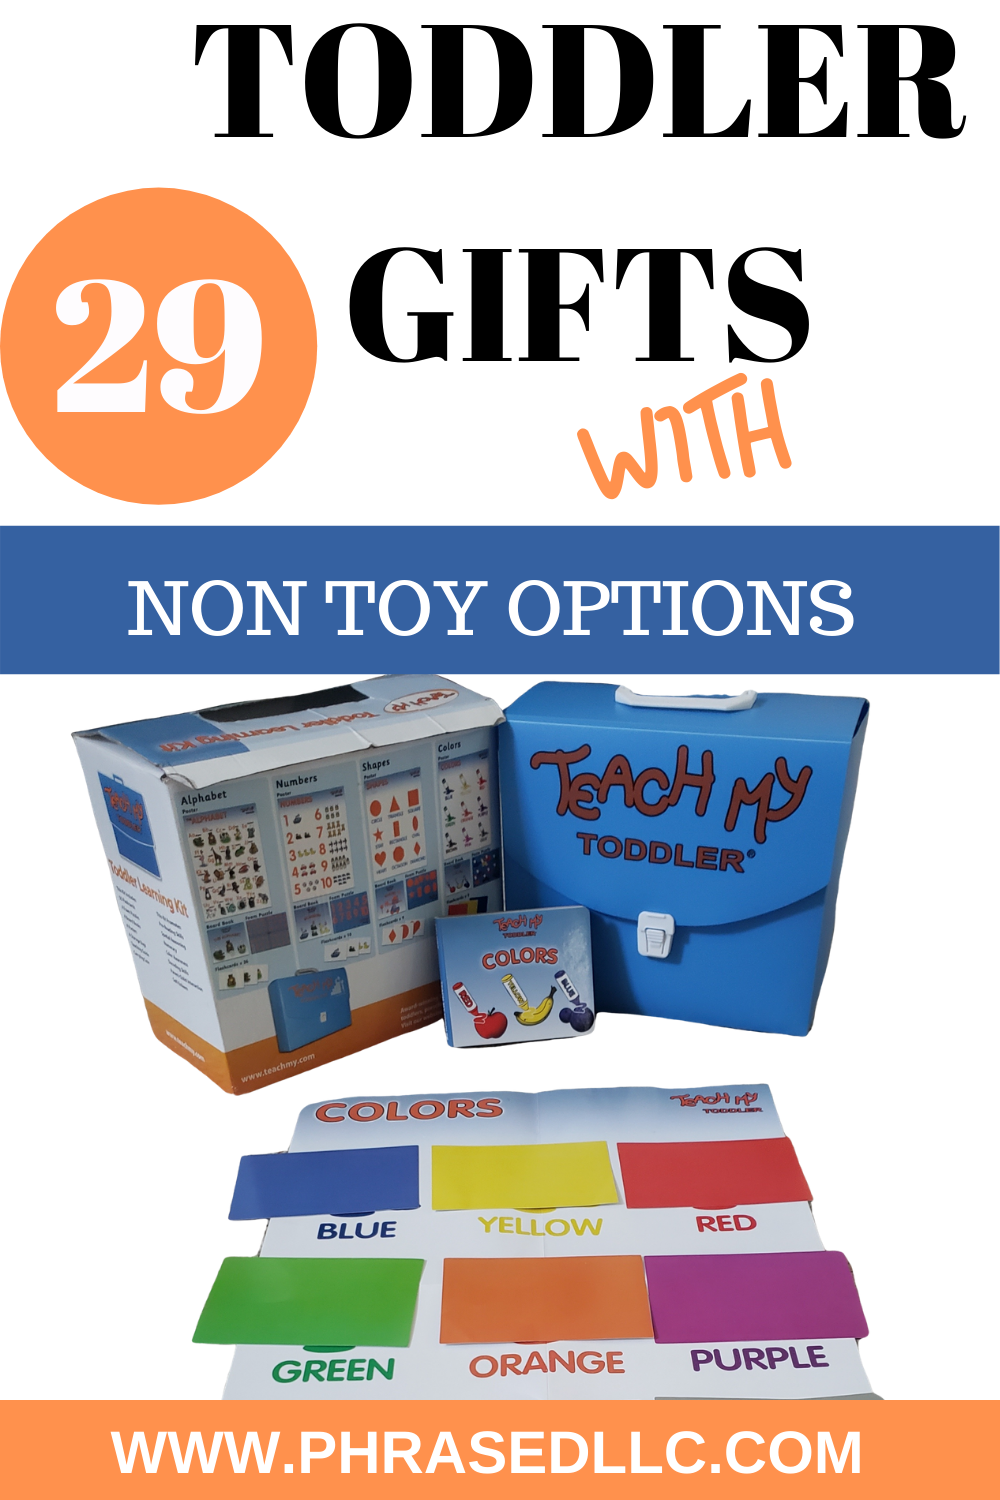 Looking for toddler gift ideas that are not toys and won't break the bank? Here are 29 of the best toddler gift ideas including indoor, outdoor, toy and non toy options.